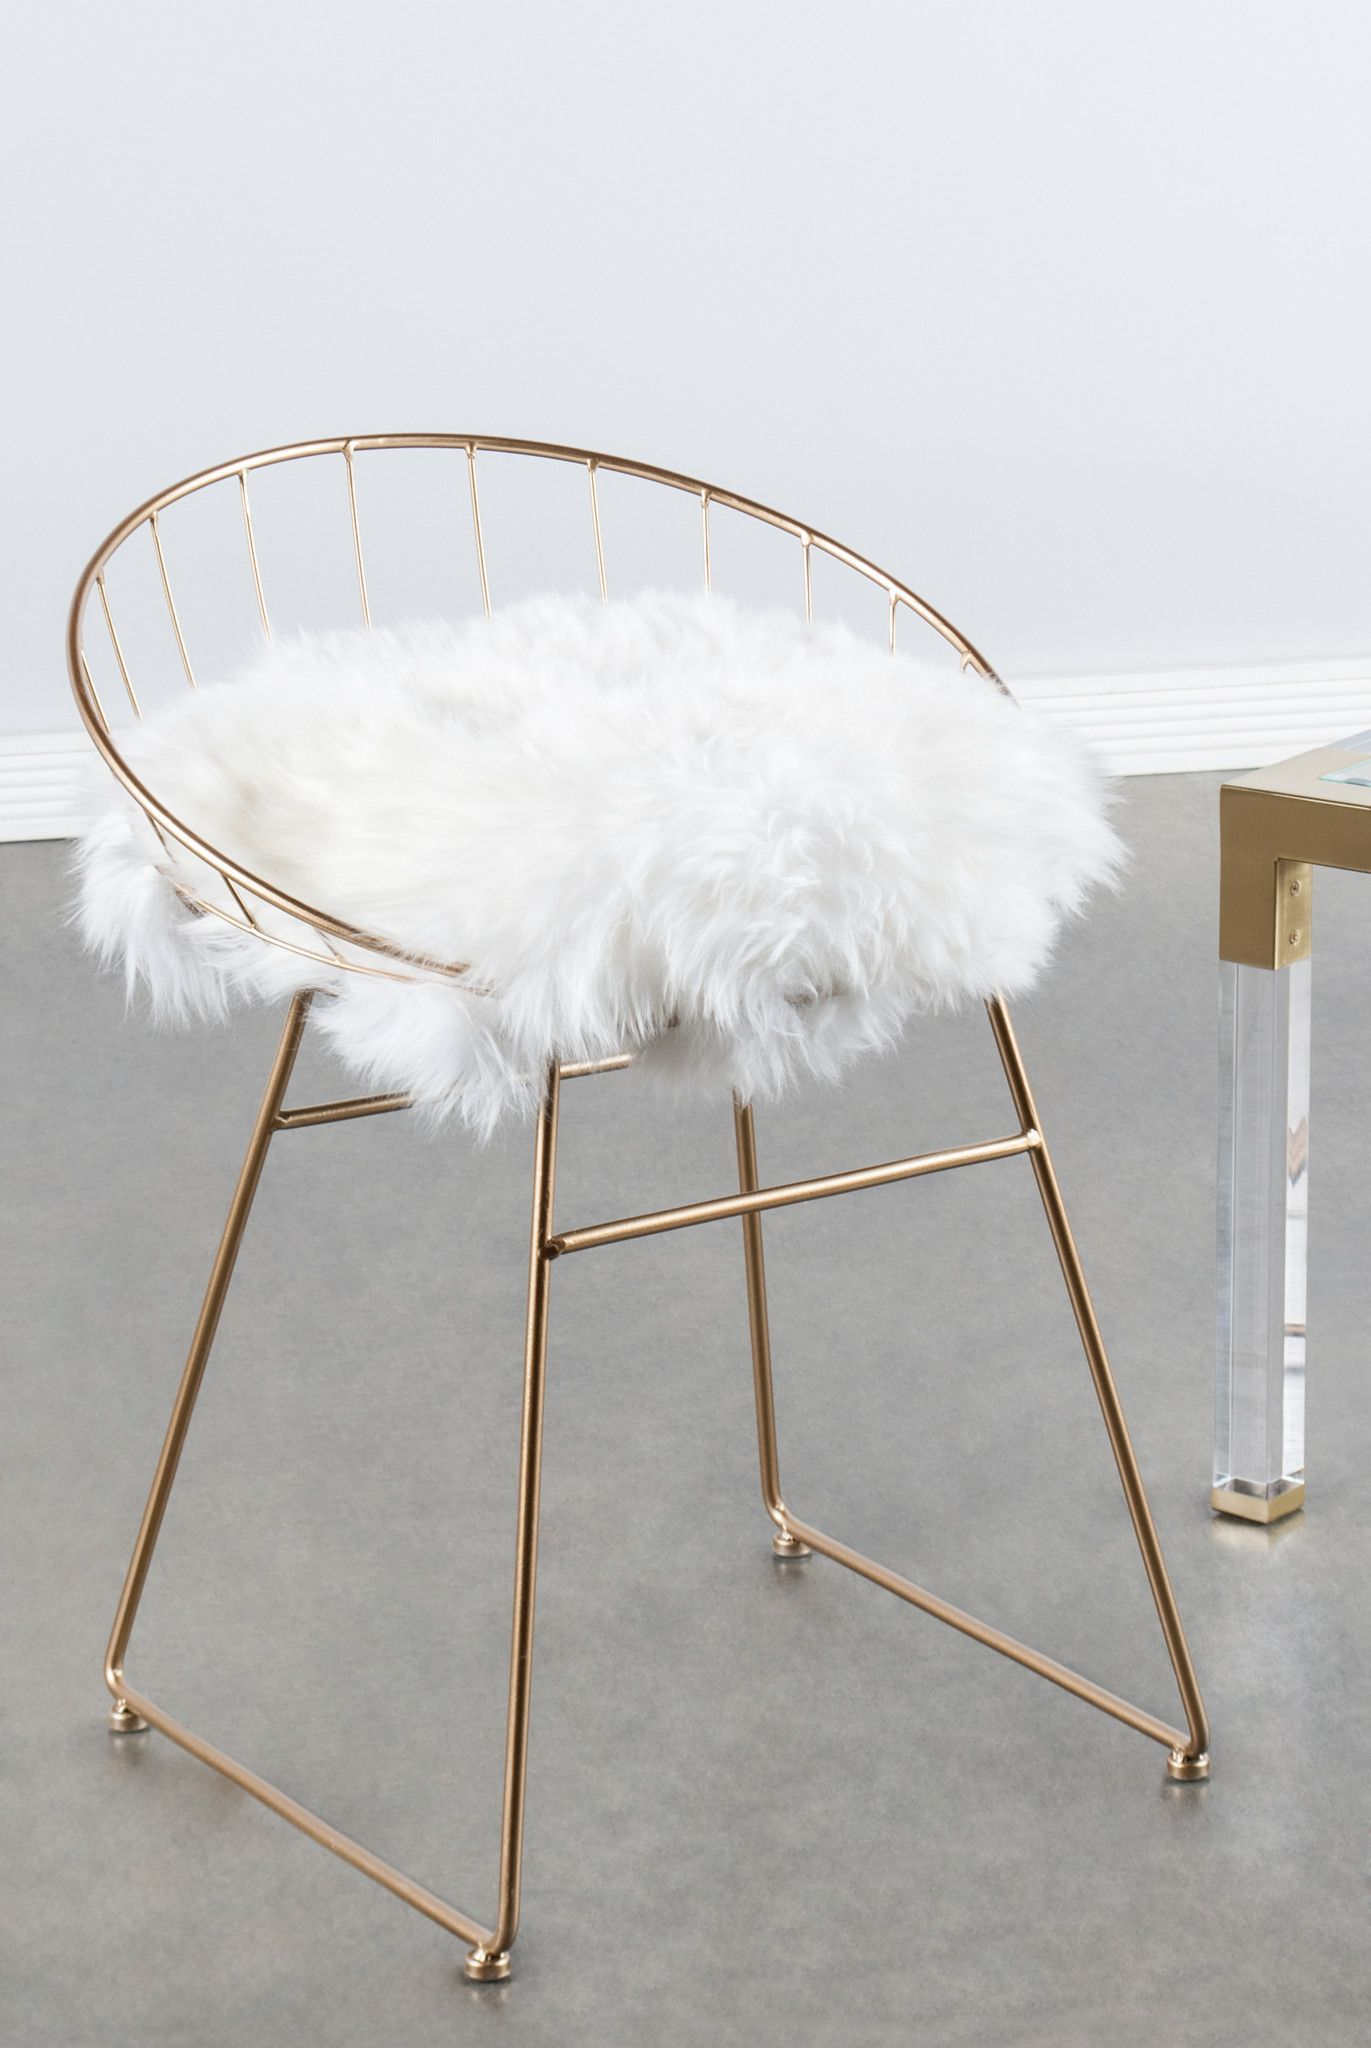 vanity chair white fur covers for hire pretoria t058fur kylie sheepskin d r e a m o bedroom room materials metal linen pad genuine sheepksin measurements 25 5 h x19 w x18 pounds 8 colors gold gray